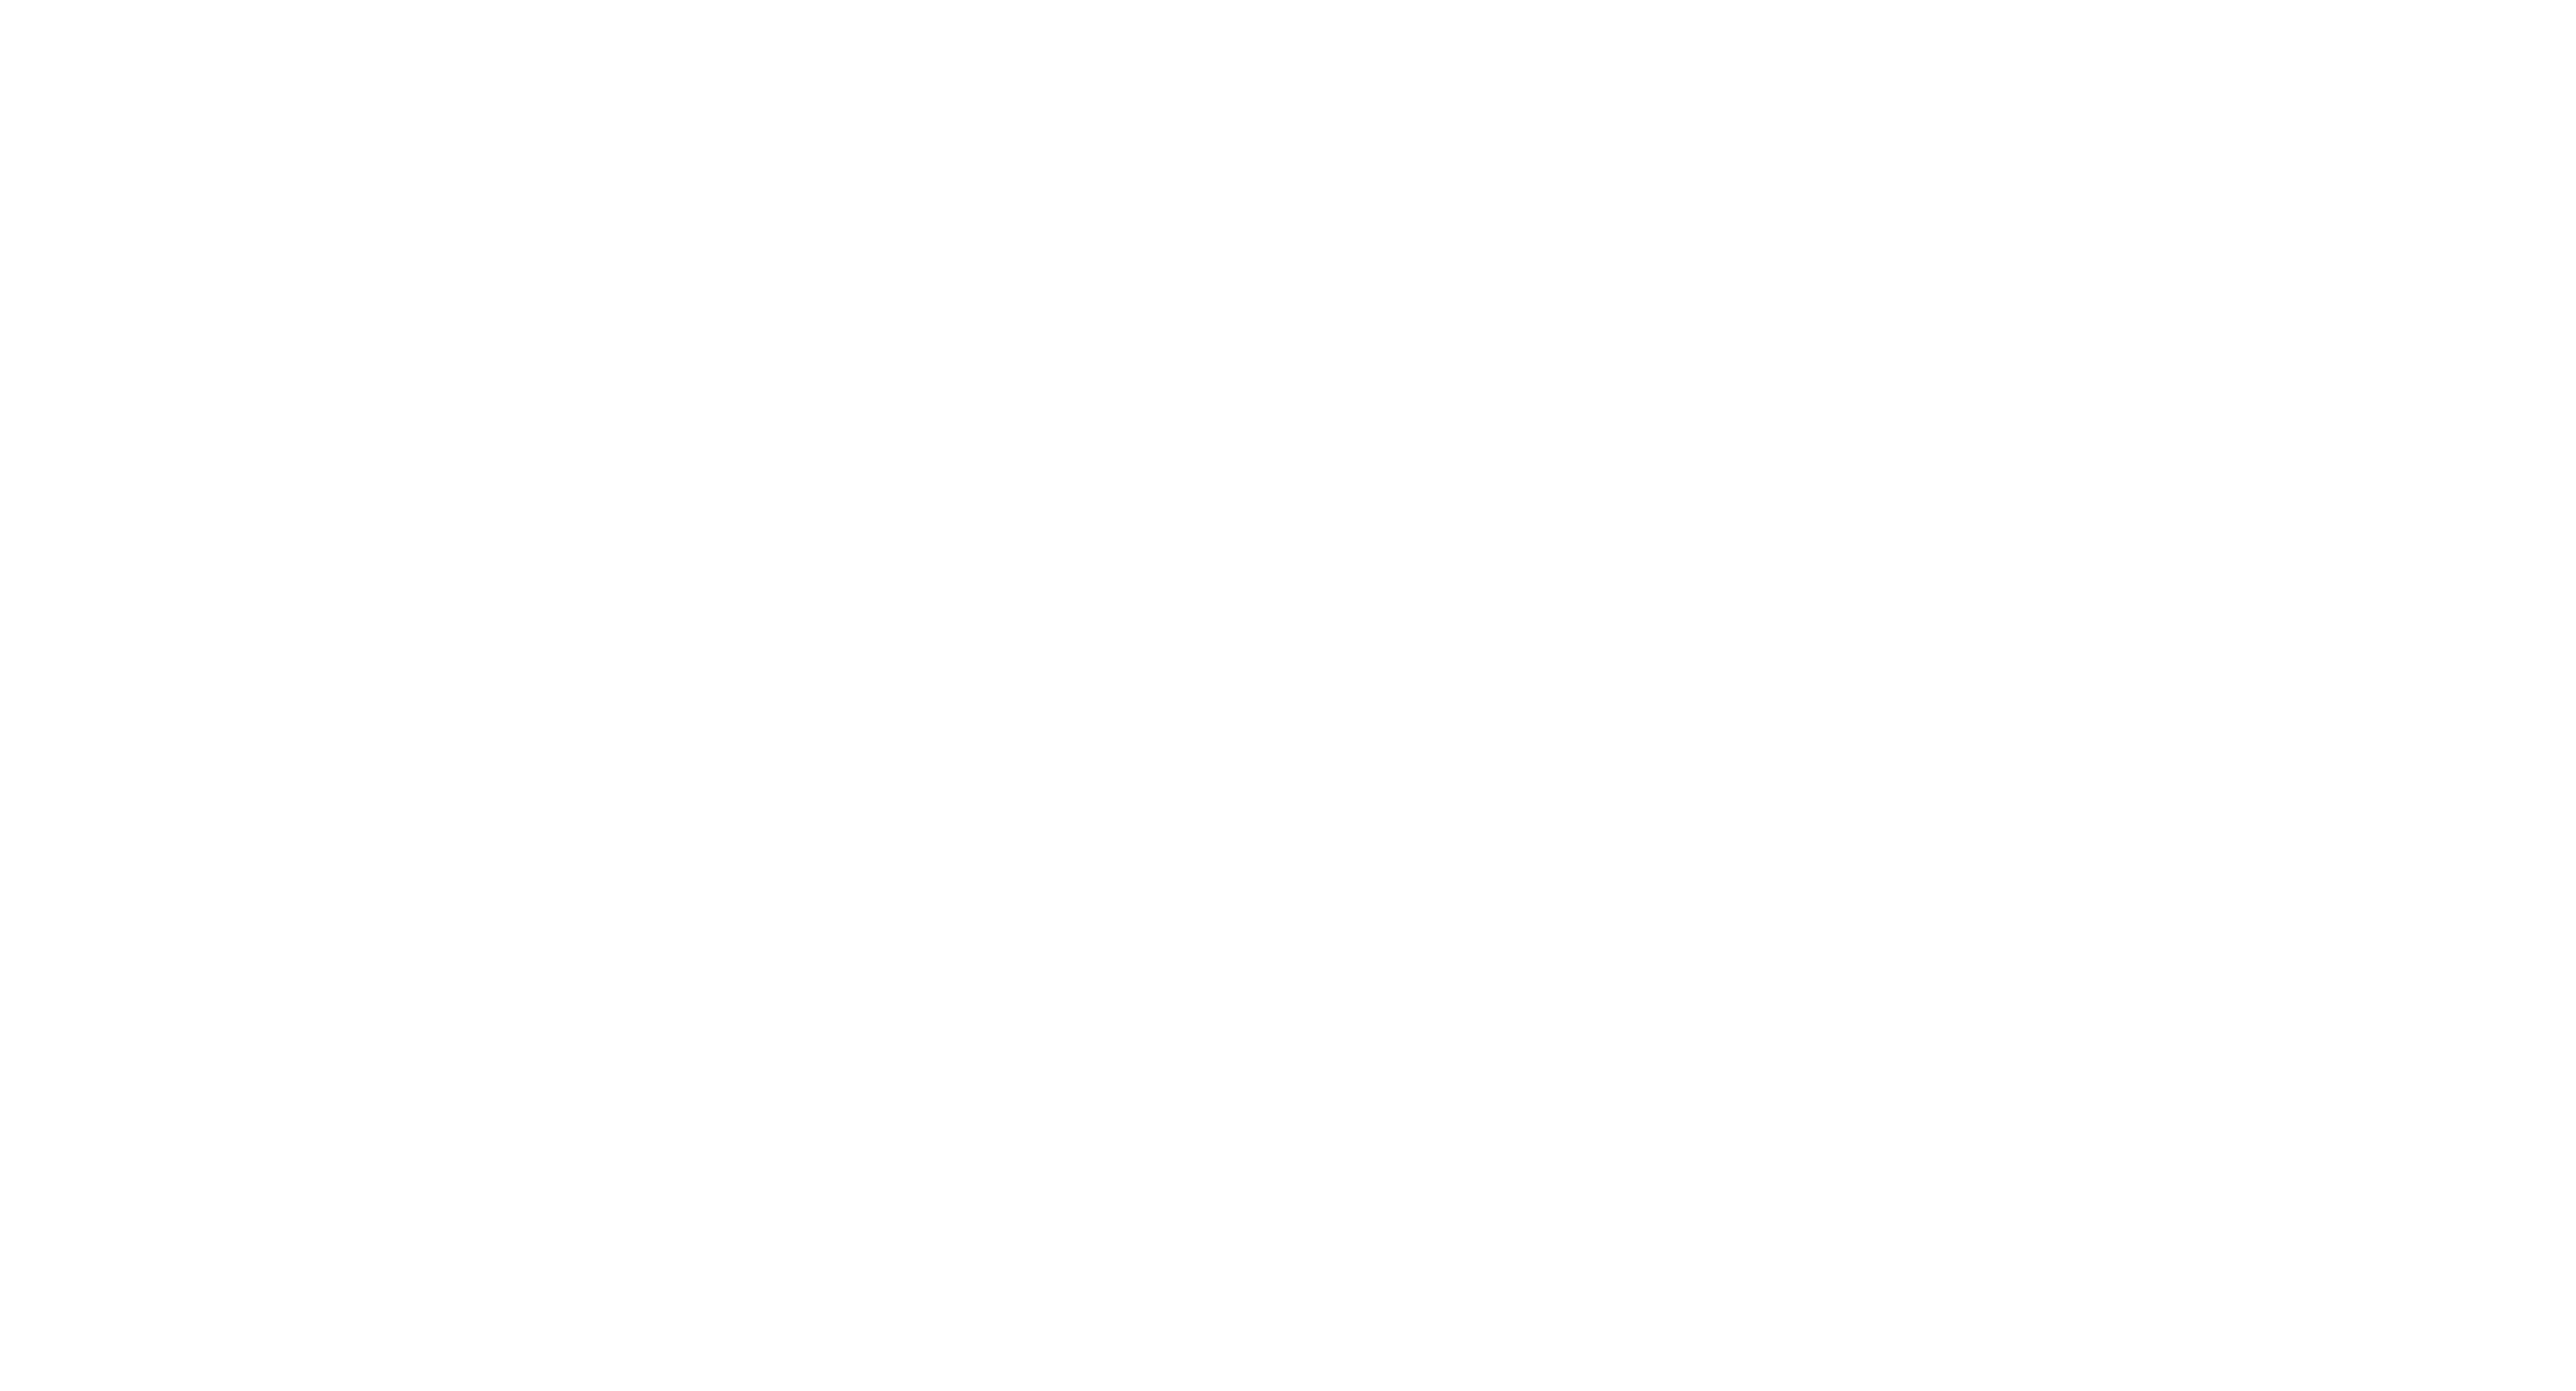 Custom Dallas Area Photography by TJ's Capturing Photography